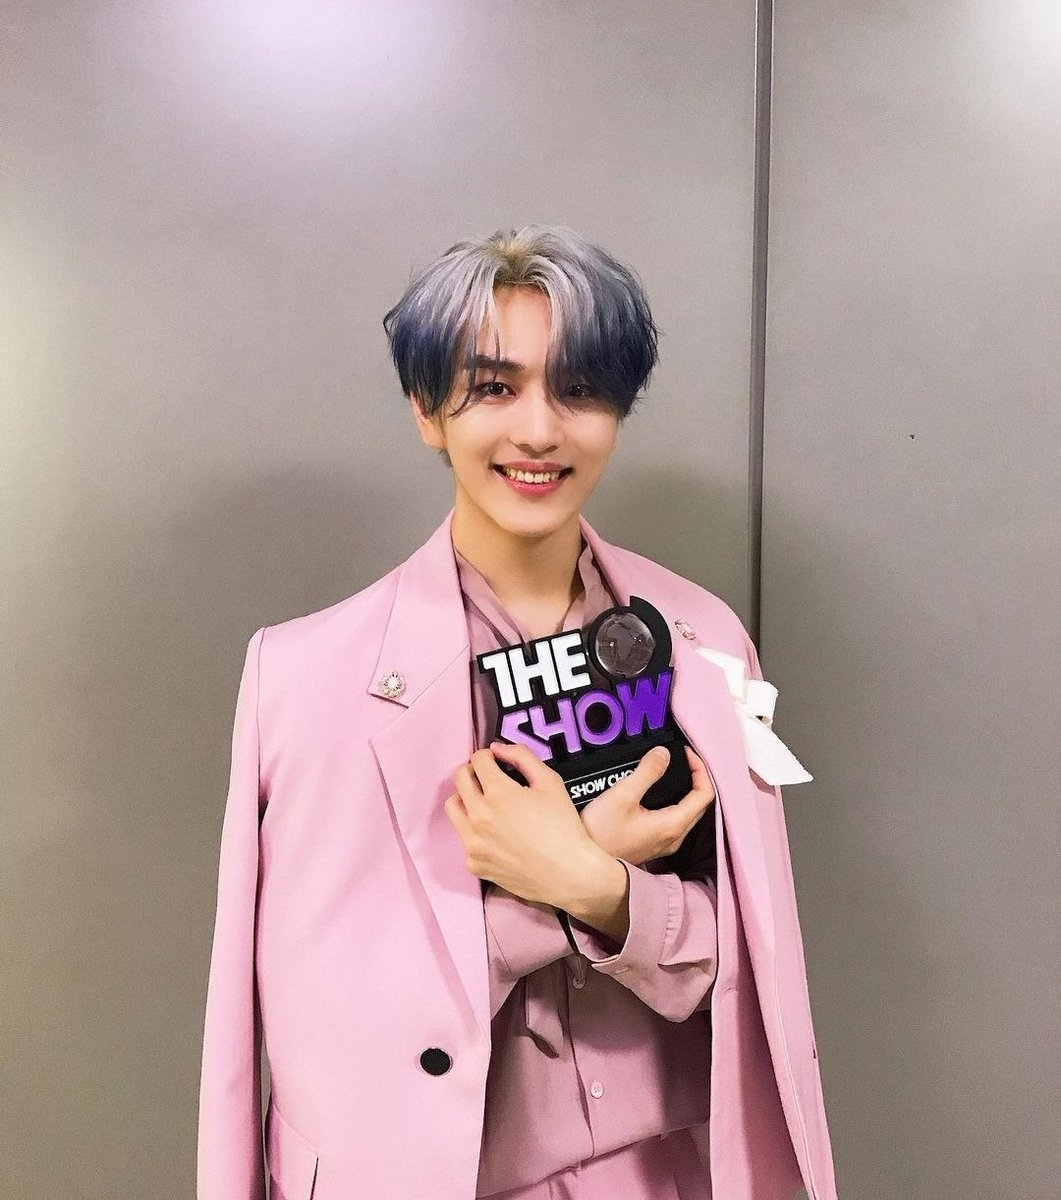 #Pentagon1stWin